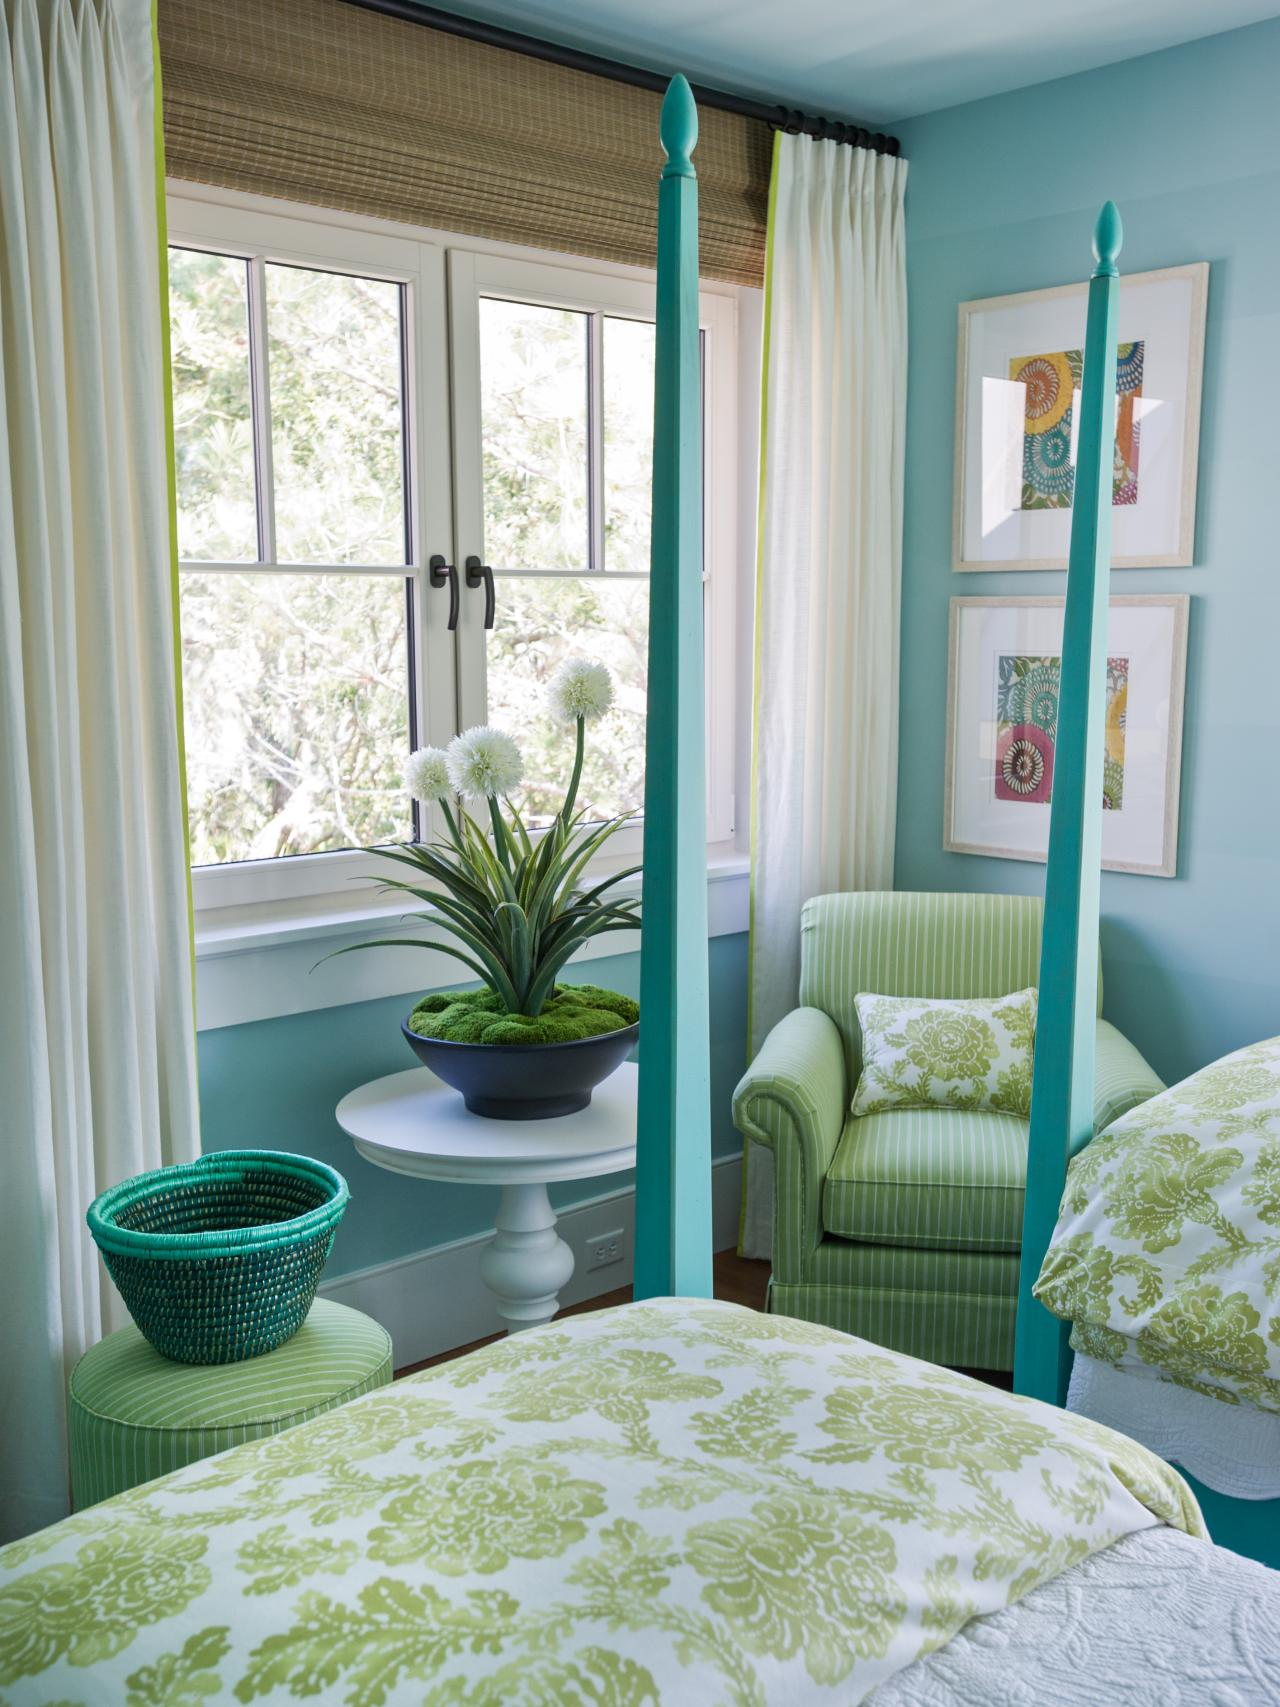 living room blue decorating ideas images of rooms with black leather furniture blues greens my favorite color combo addicted 2 green and via hgtv dream home 2013 bedroom